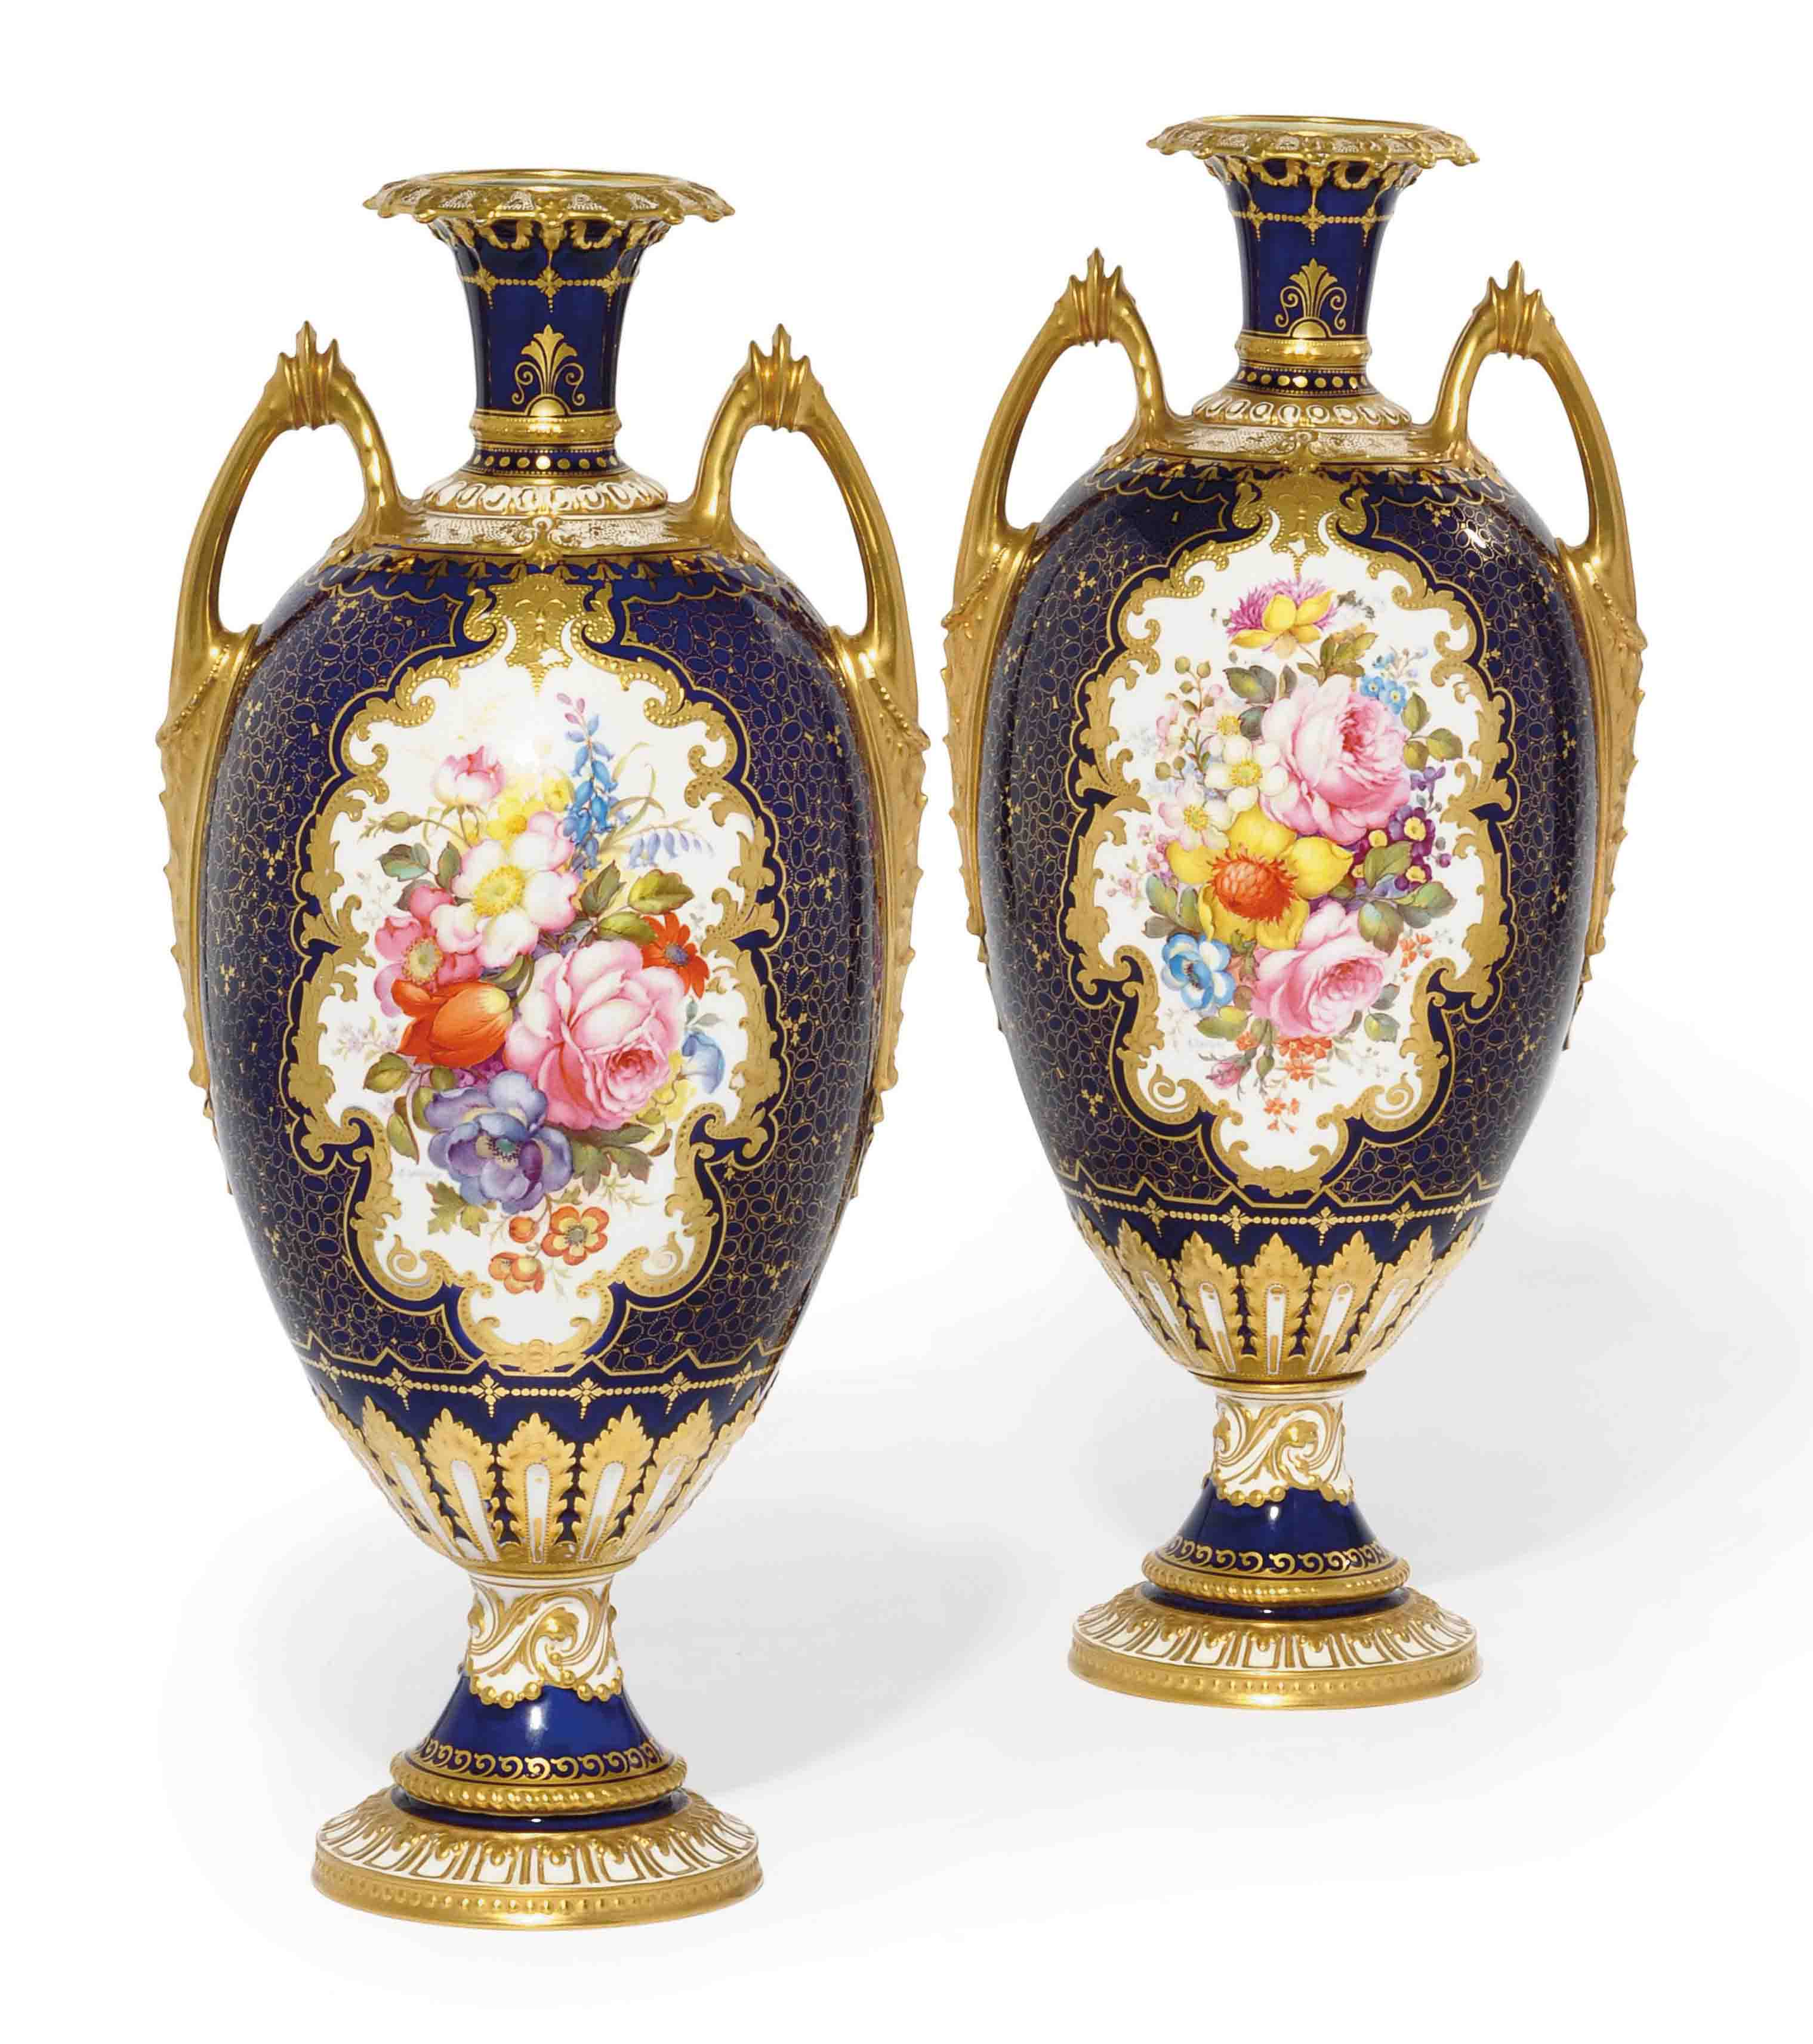 A PAIR OF ROYAL CROWN DERBY COBALT BLUE-GROUND VASES